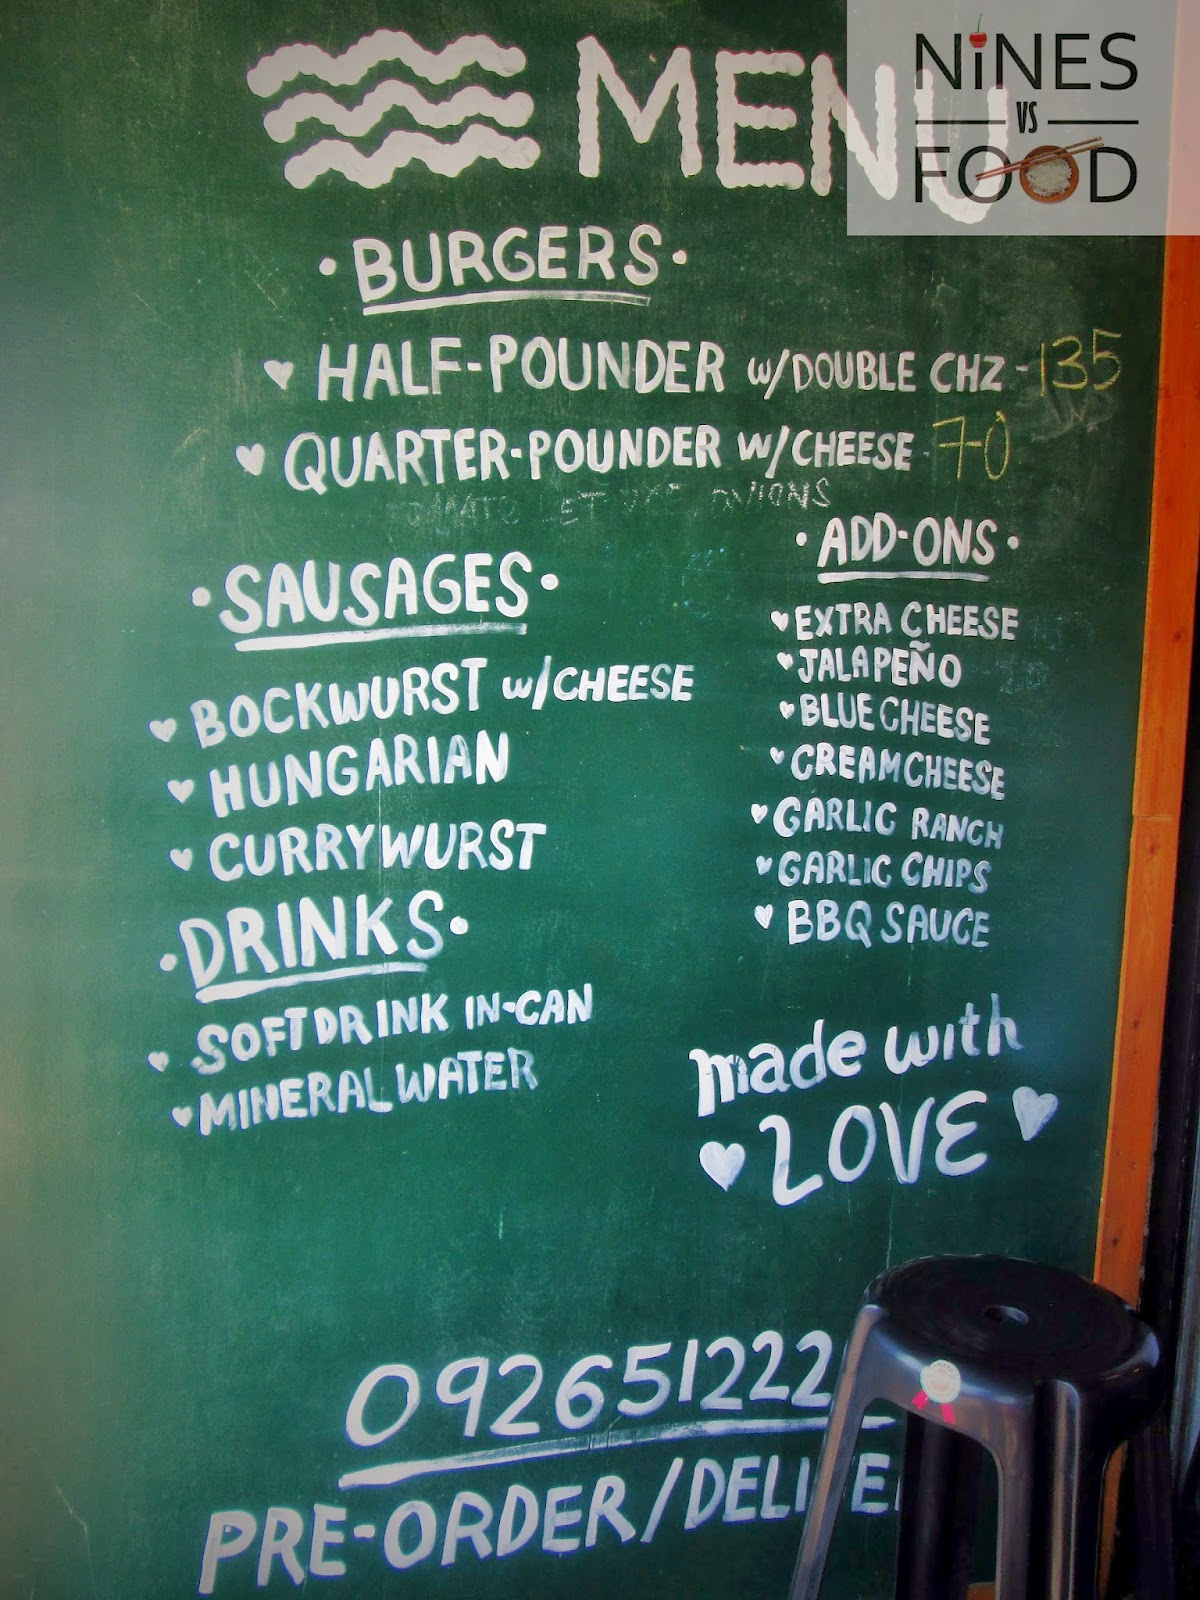 Nines vs. Food - The Snack Shack Sikatuna-2.jpg